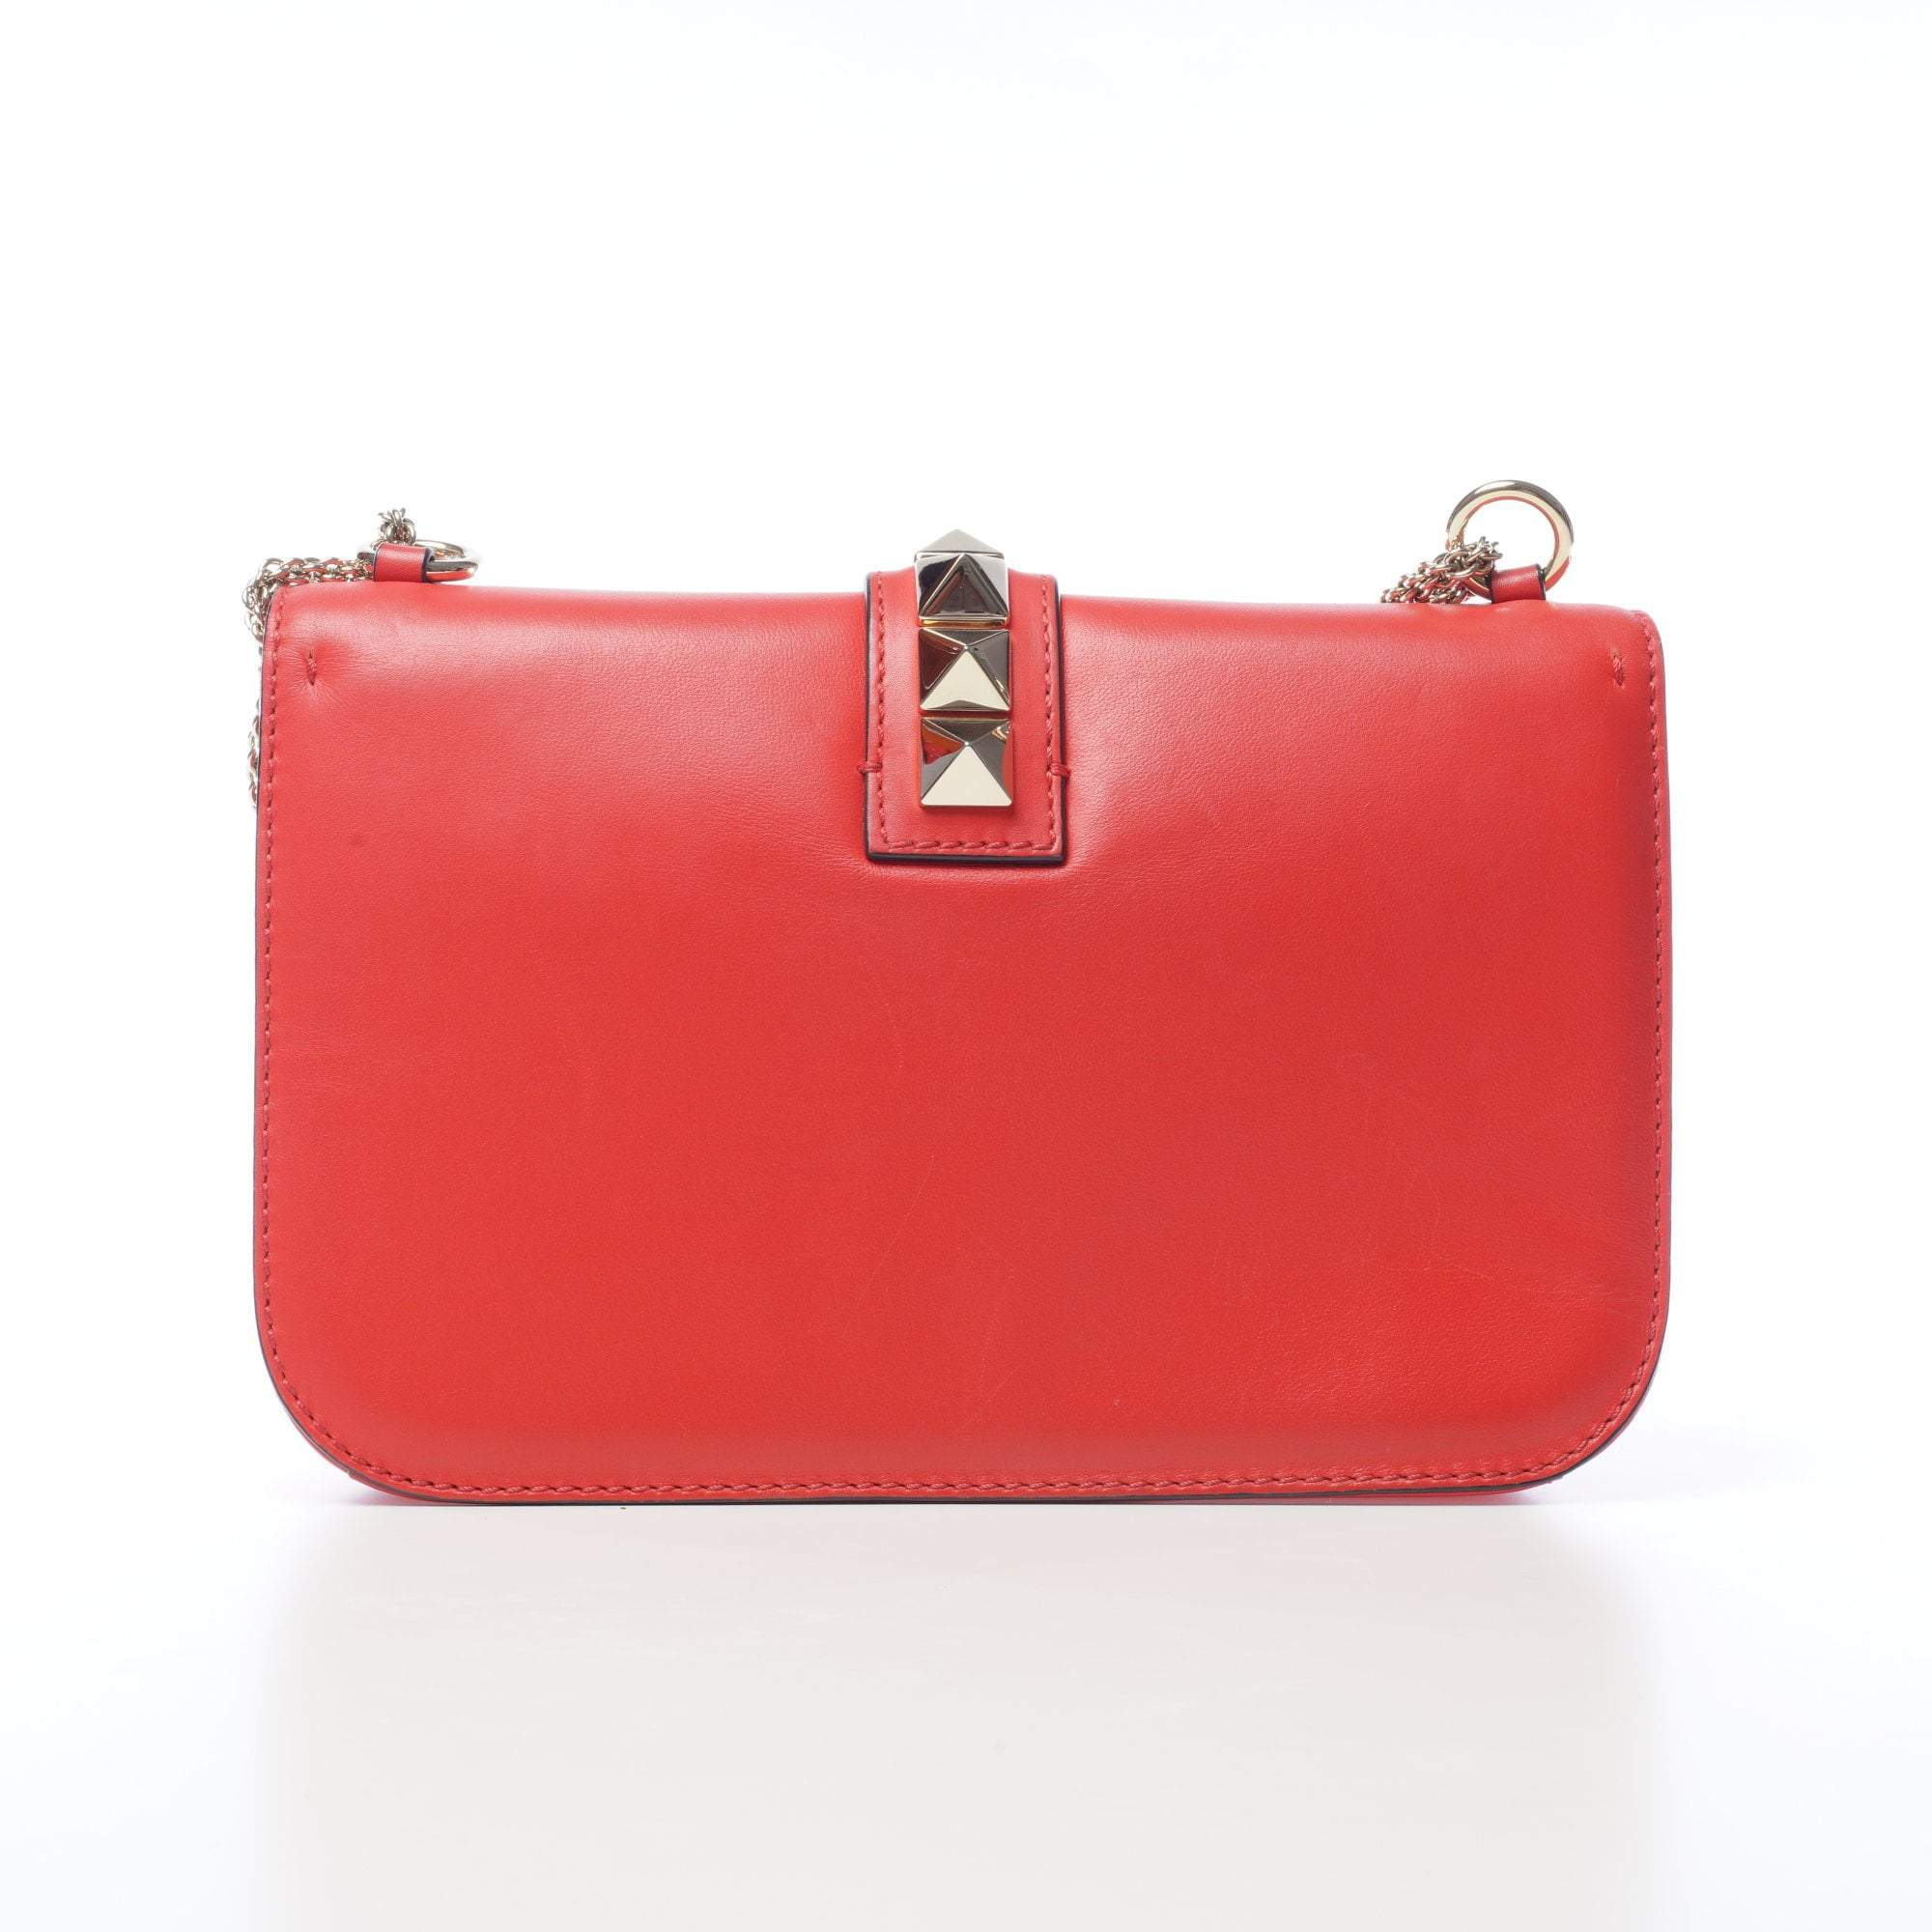 Valentino Red Lock Rockstud Trim Flap Bag